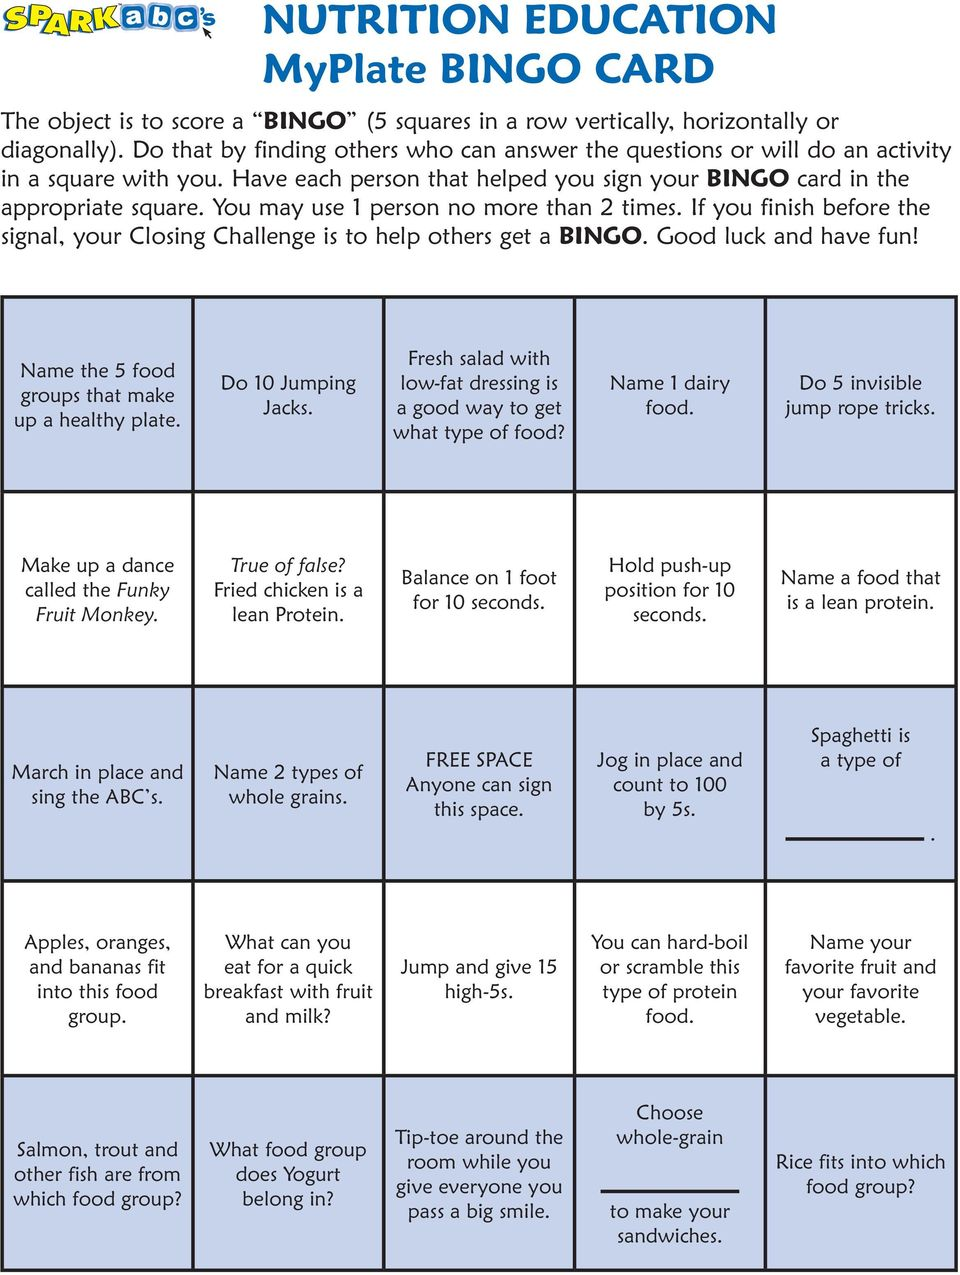 You may use 1 person no more than 2 times. If you finish before the signal, your Closing Challenge is to help others get a BINGO. Good luck and have fun!